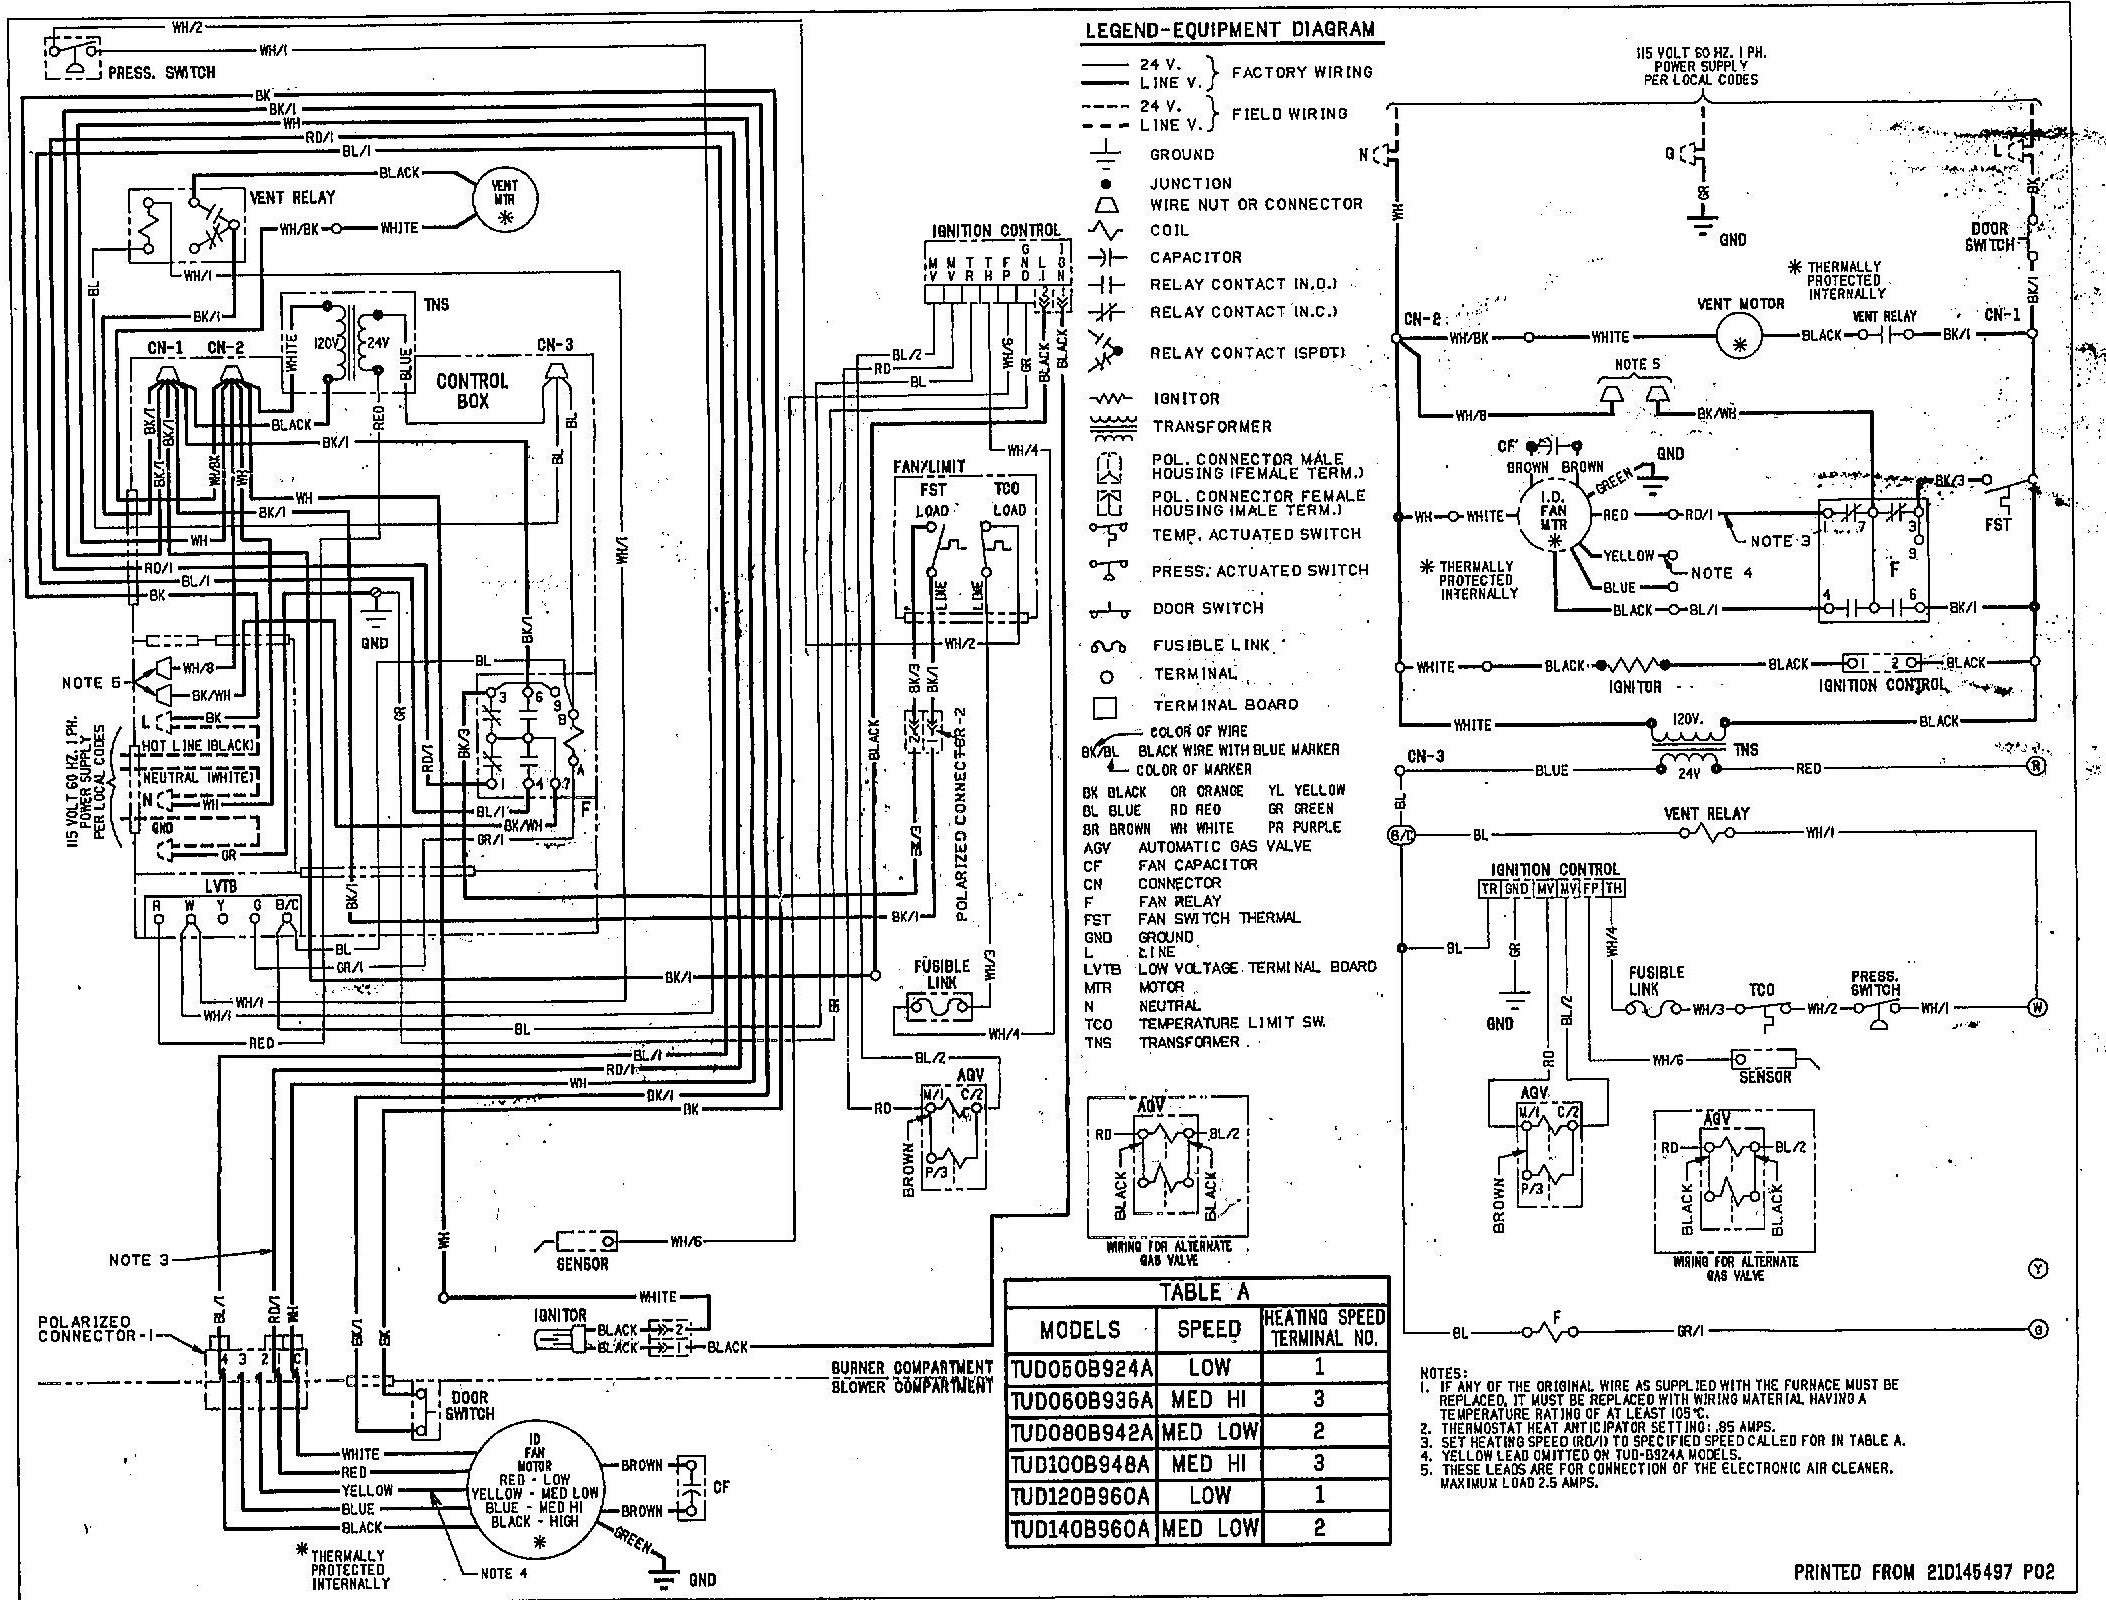 45 Electric Furnace Wiring Diagram, Dayton Gas Furnace Wiring - Goodman Electric Furnace Wiring Diagram